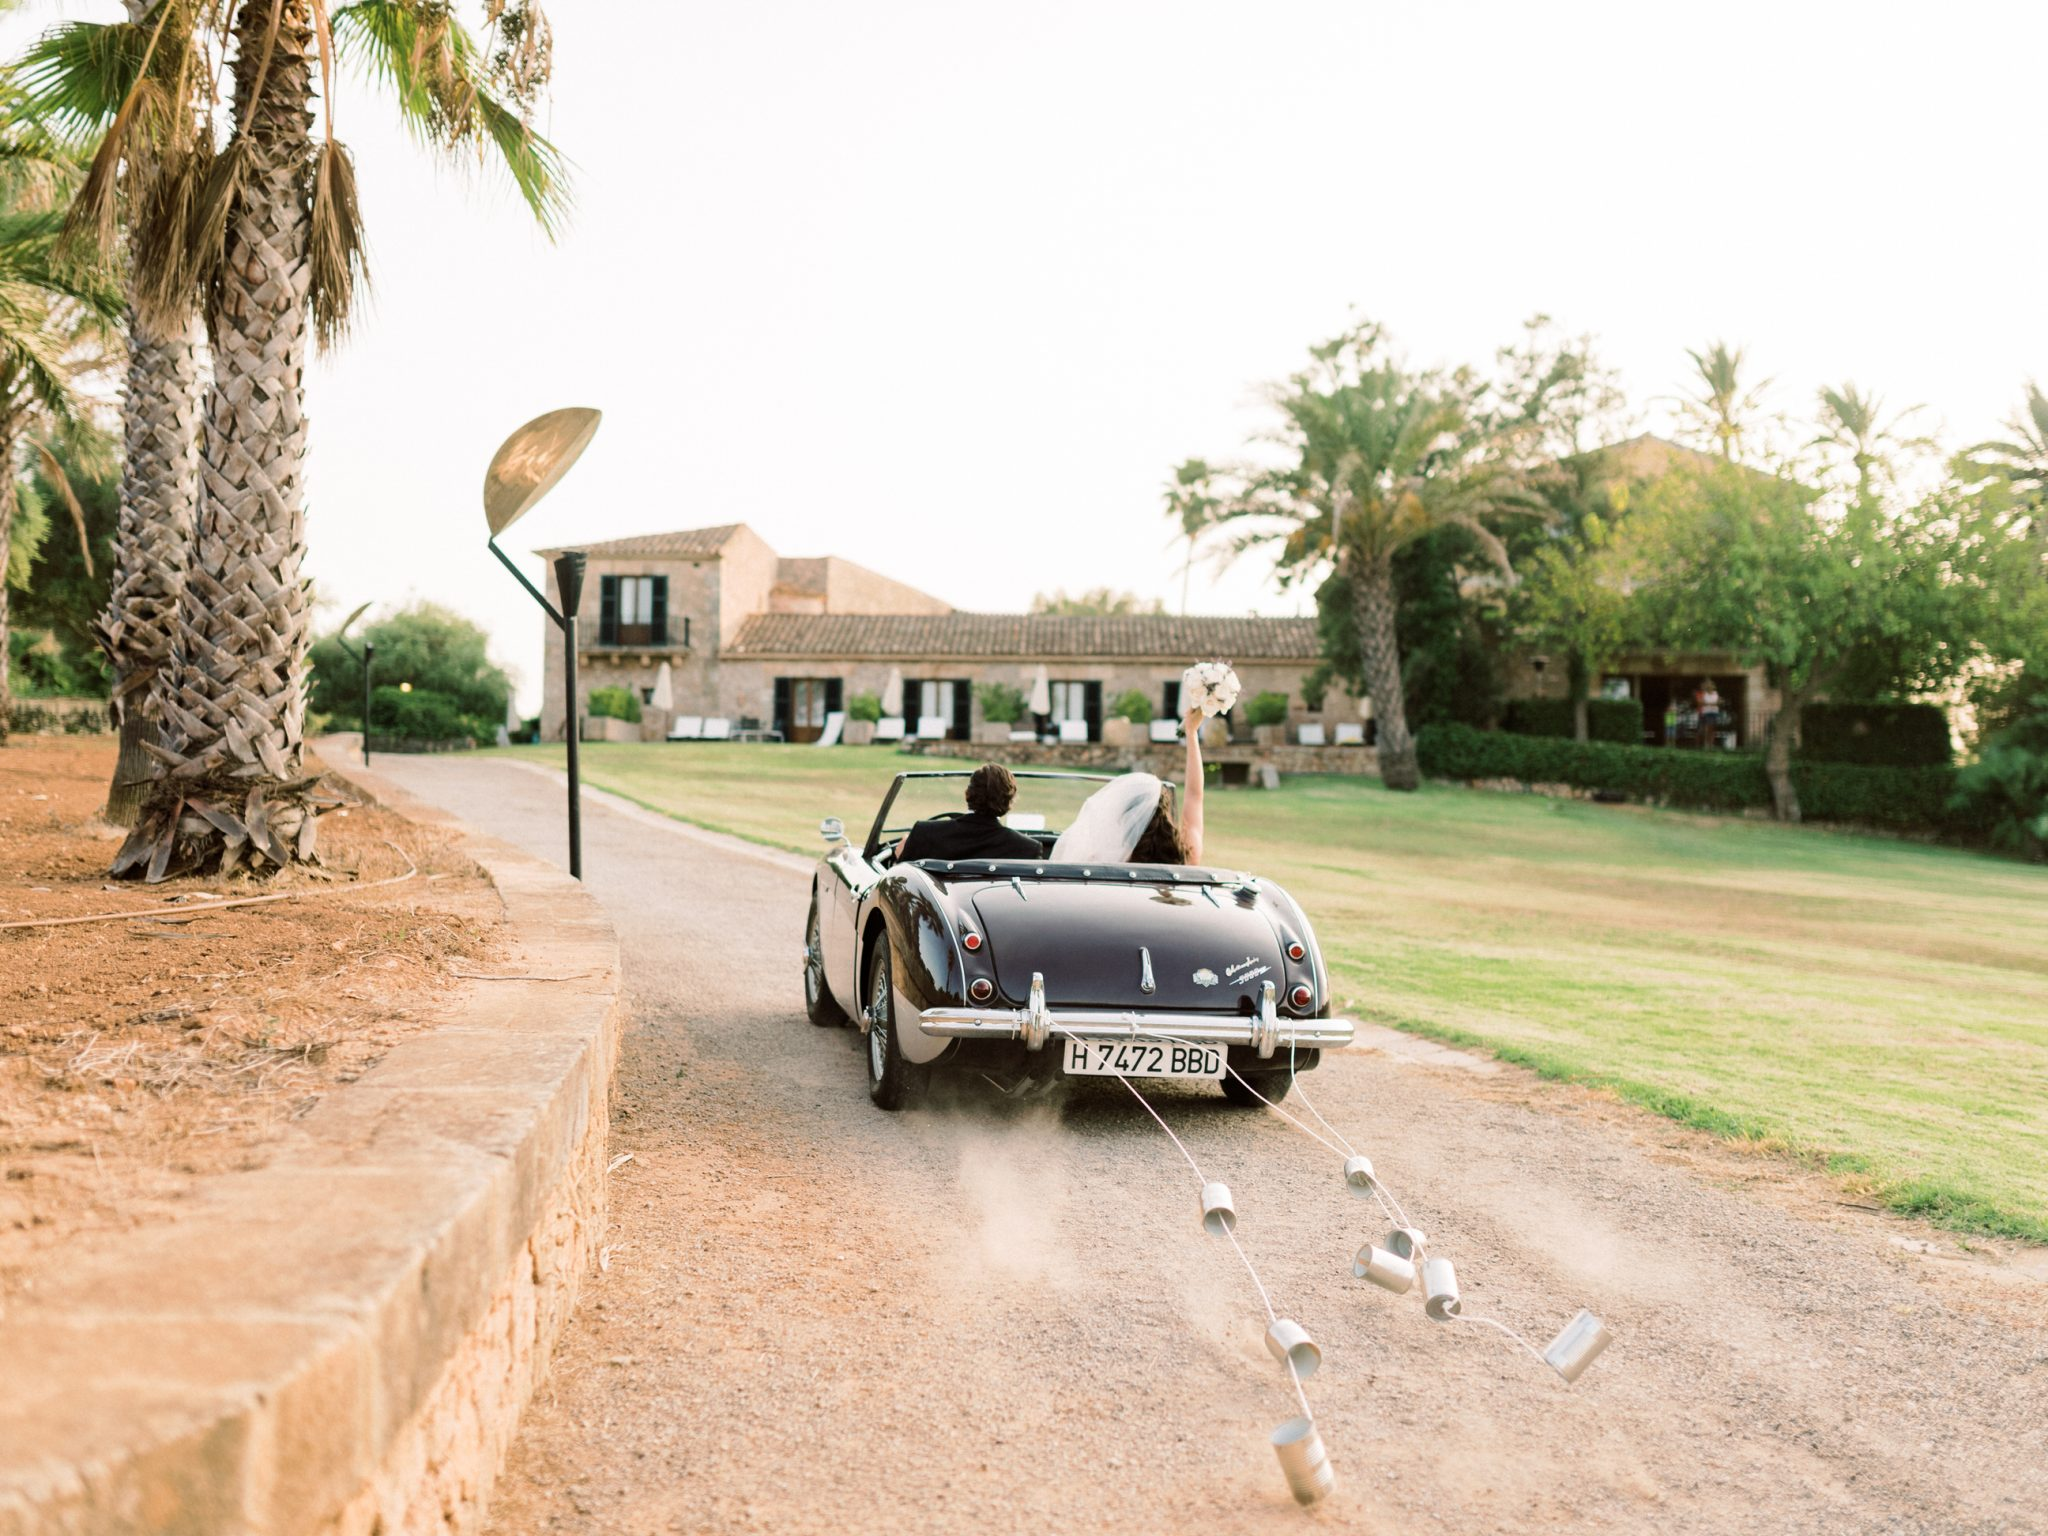 Wedding Casal Santa Eulalia, Mallorca Wedding Photographer